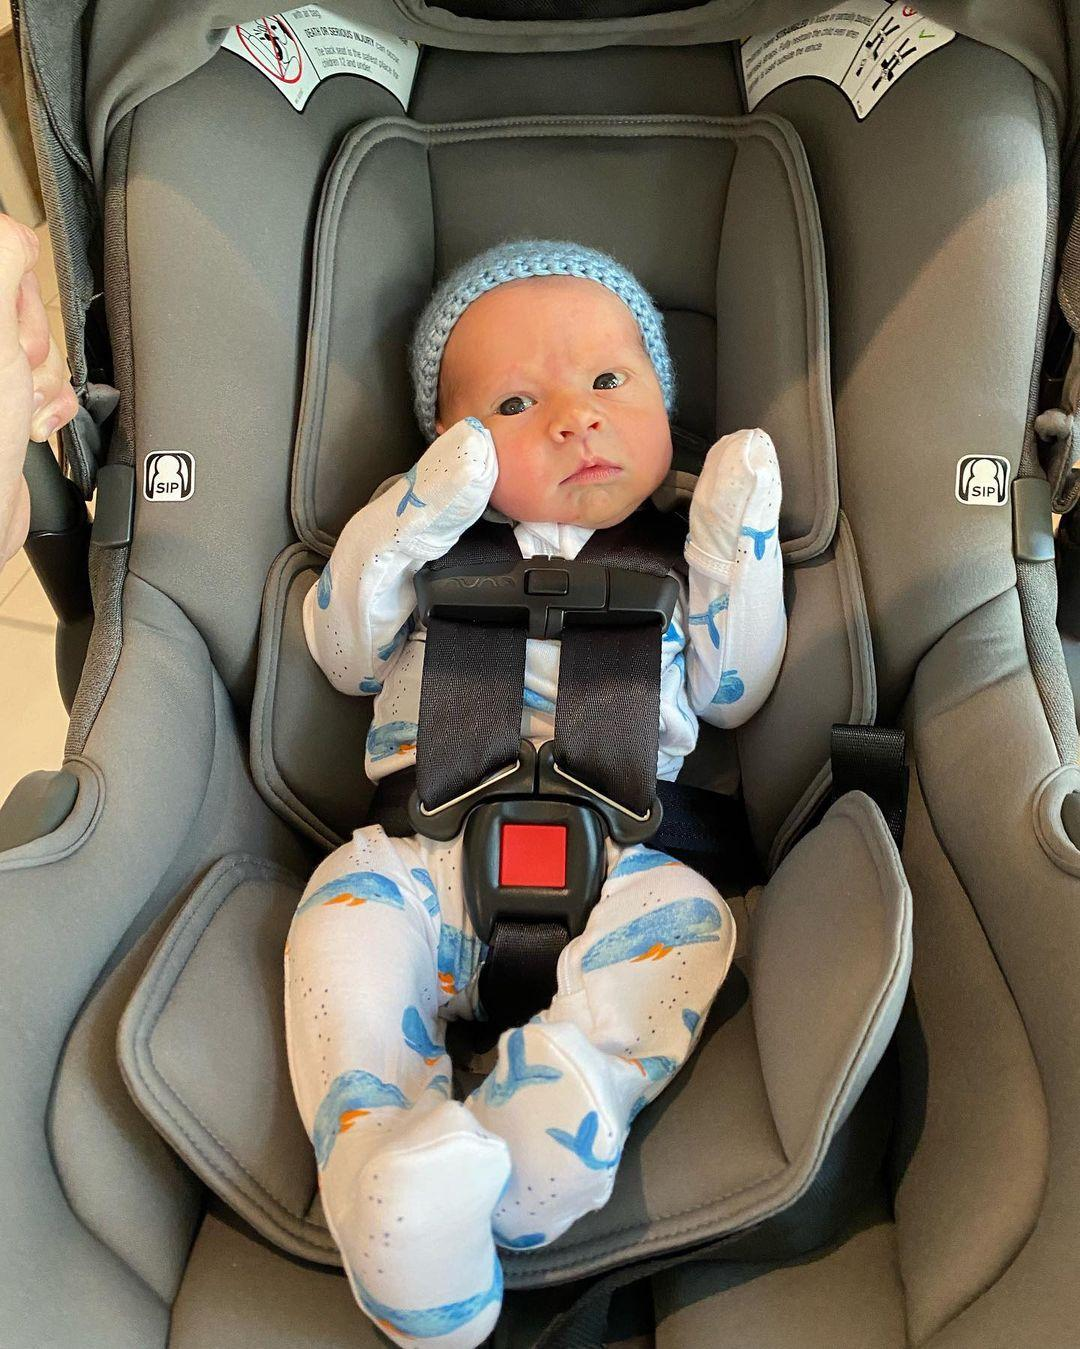 'Southern Charm' Star Ashley Jacobs Welcomes New Baby Boy!